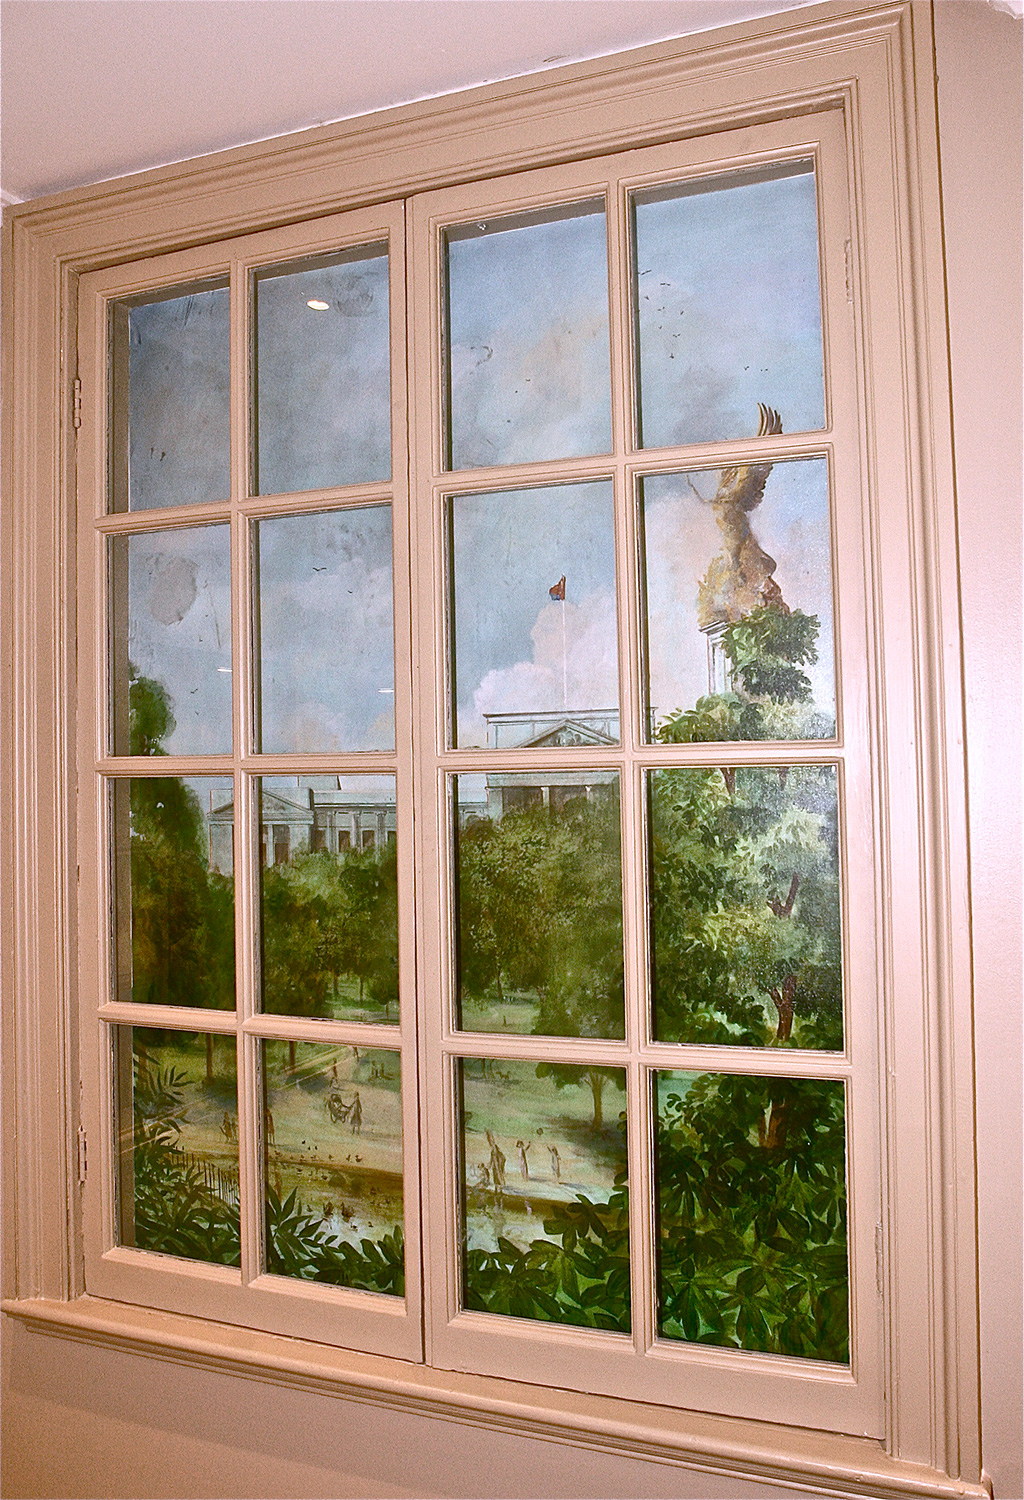 Buckingham Palace and Green park window mural.